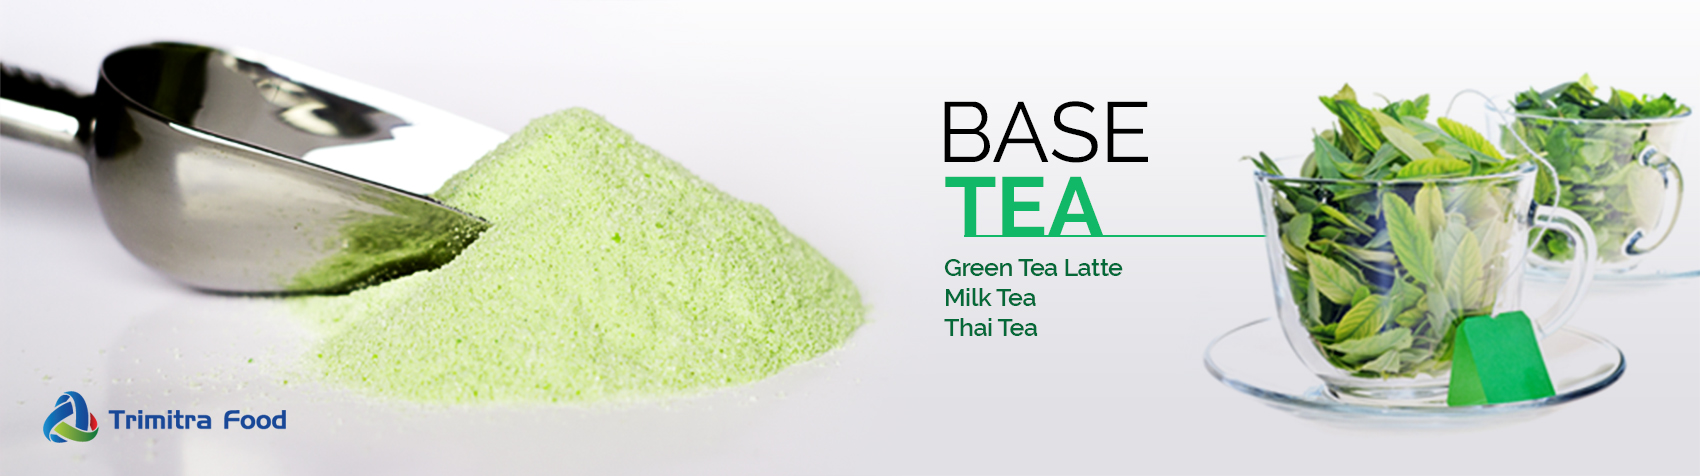 header-base-tea-3-rev